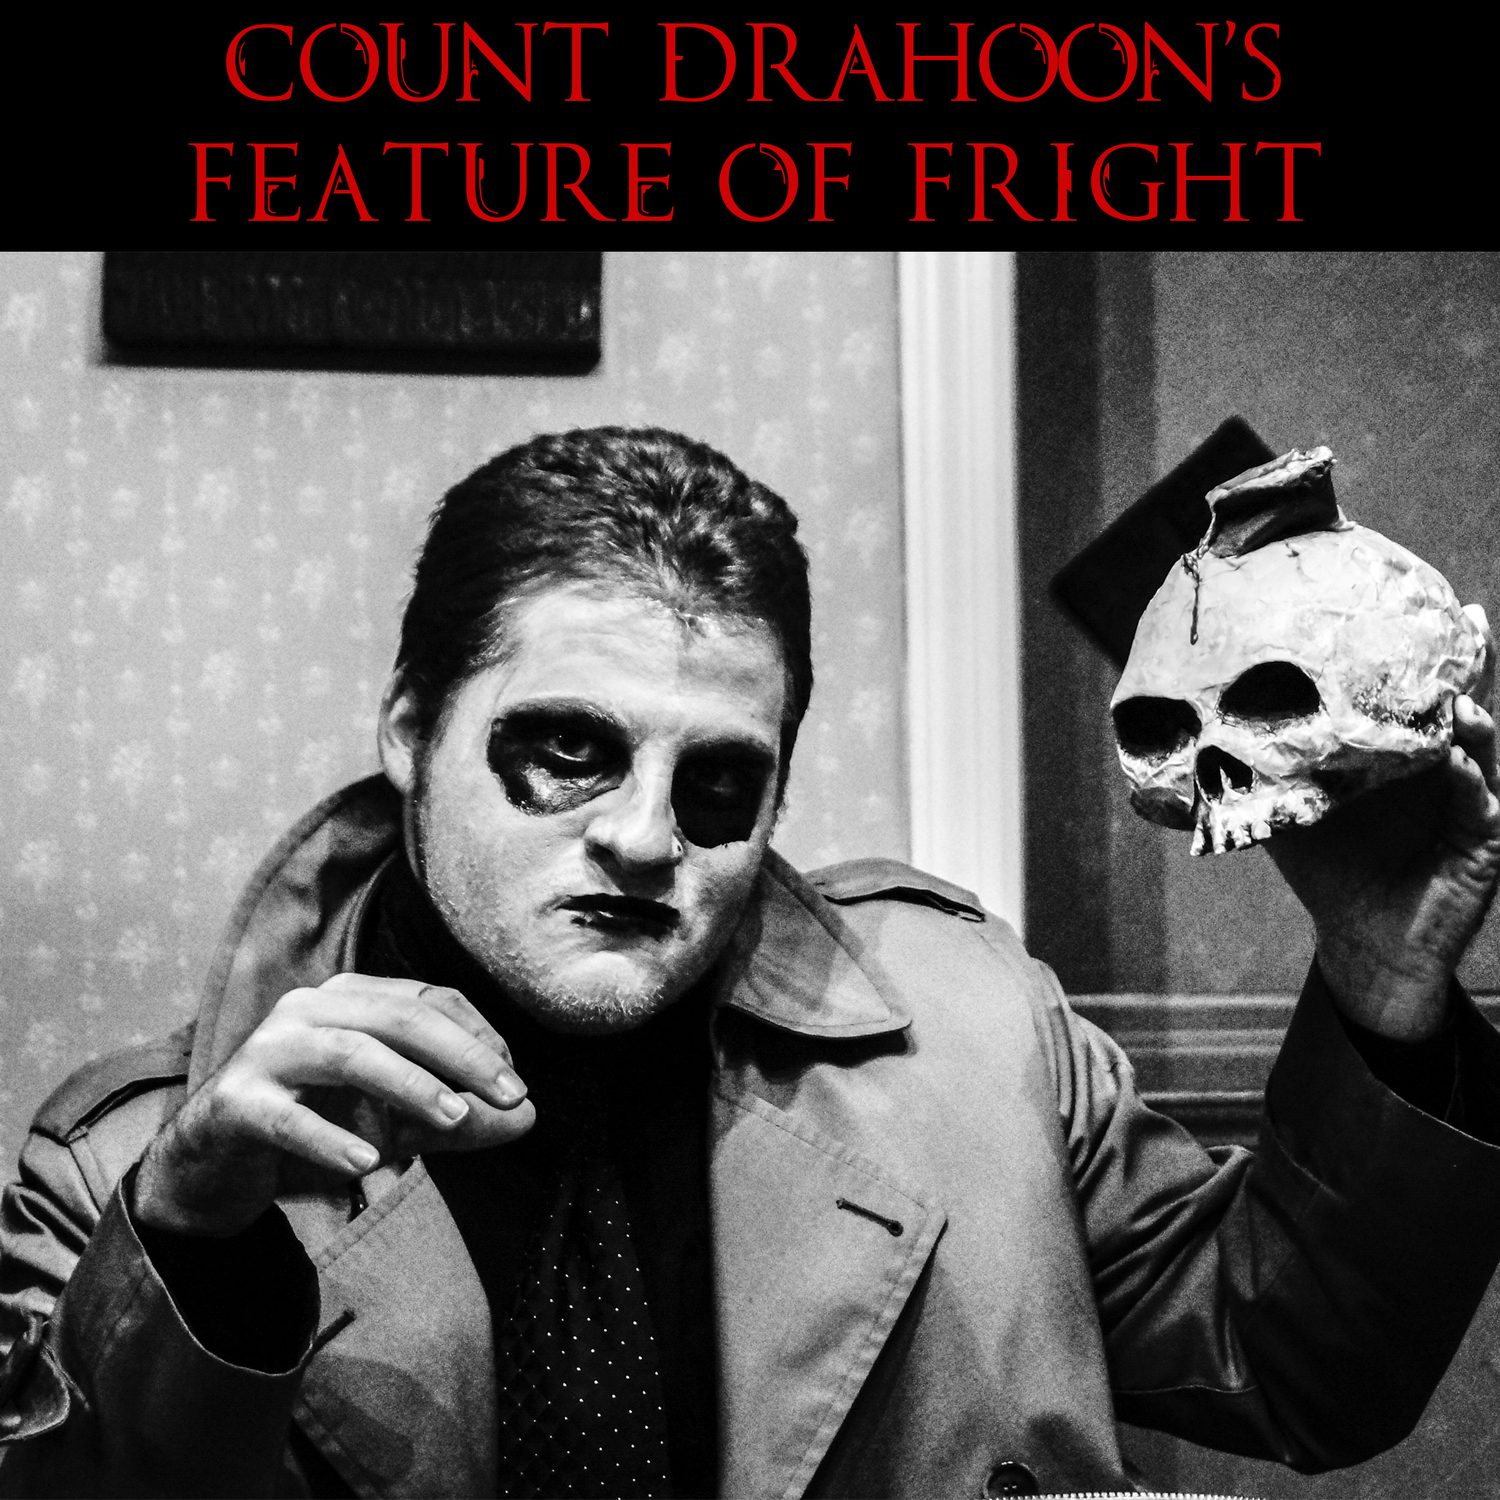 Count Drahoon's Feature of Fright - CAMCORDER TV